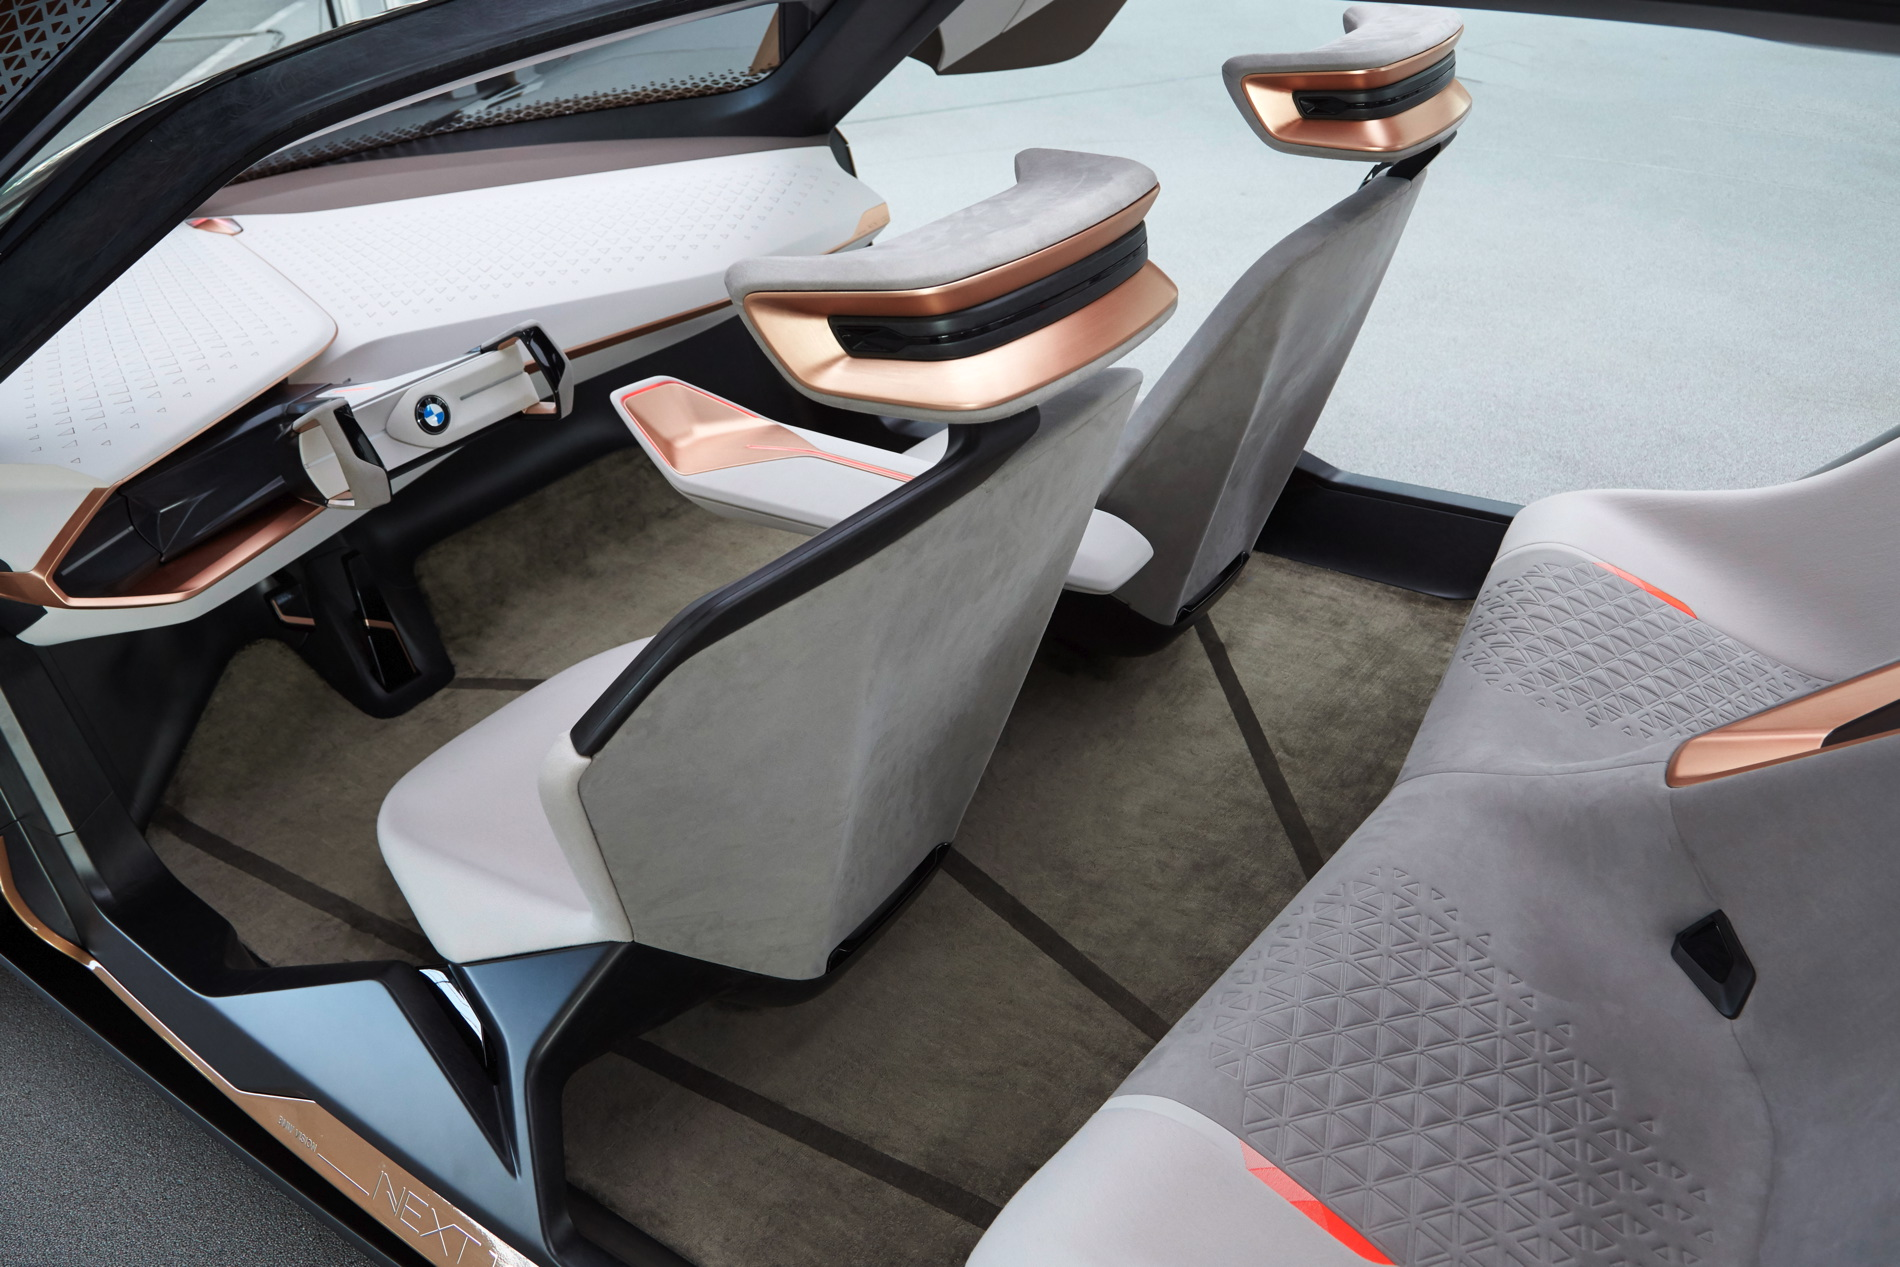 Bmw Designed Vision Next 100 From The Interior Out